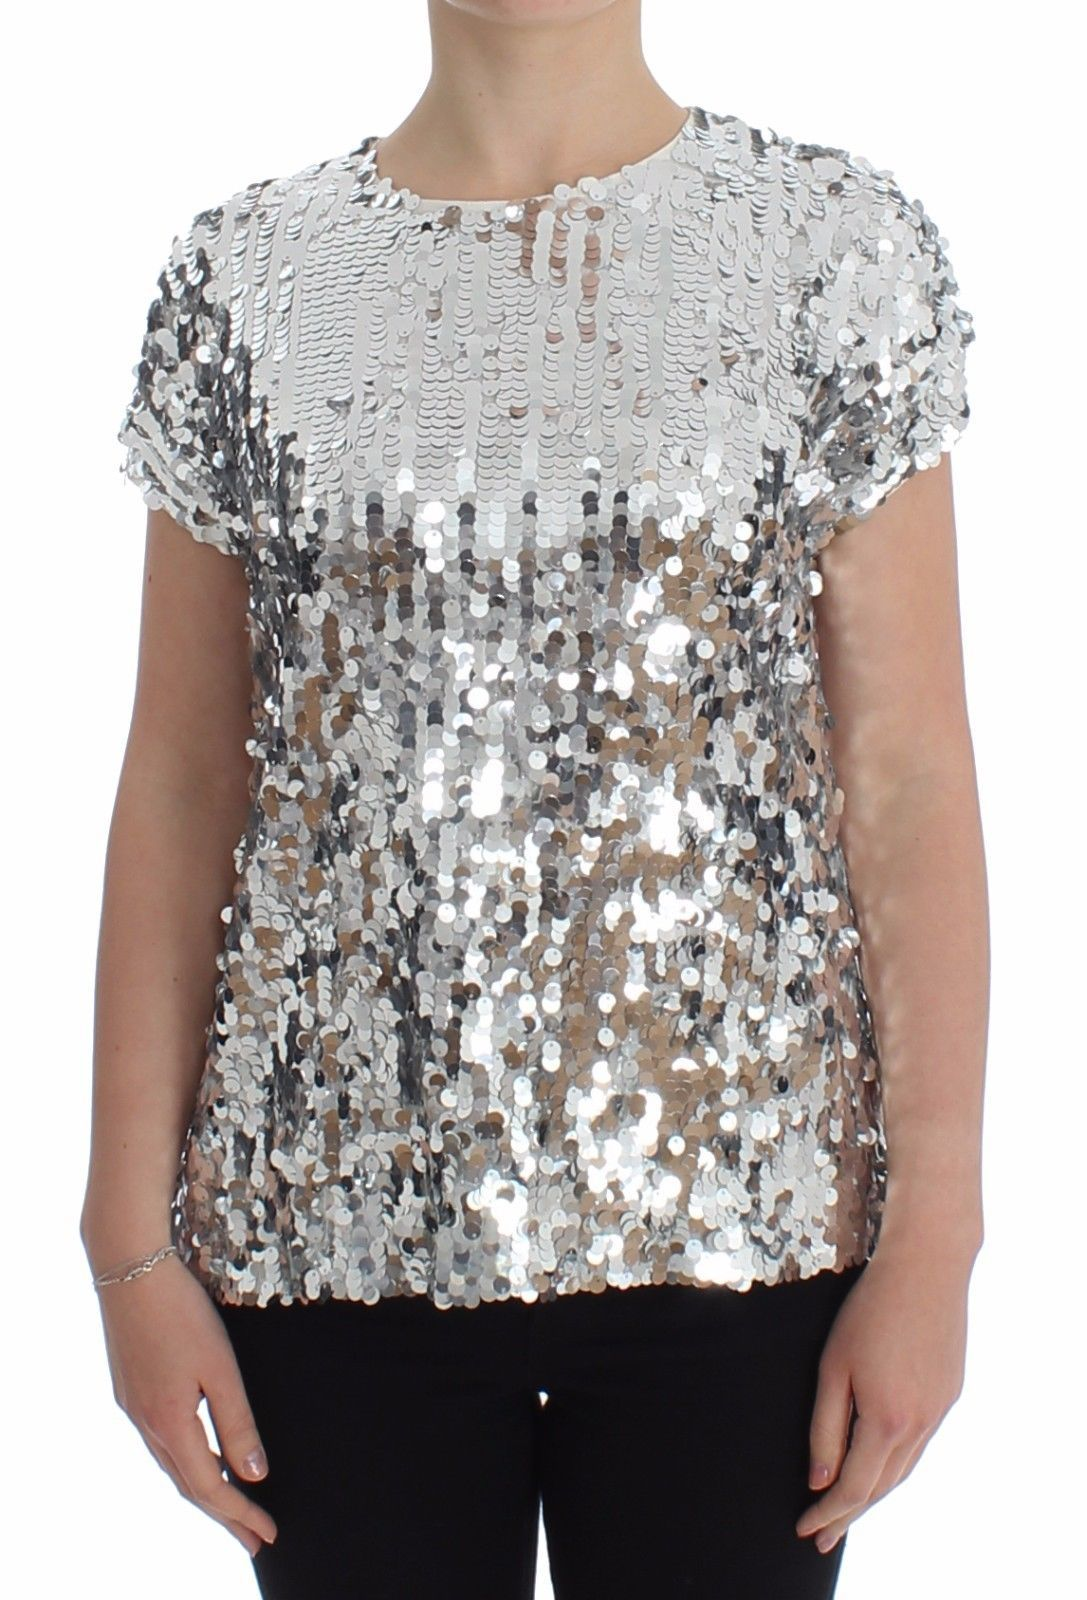 Dolce & Gabbana Women's Sequined T-Shirt White/Silver SIG13202 - IT44